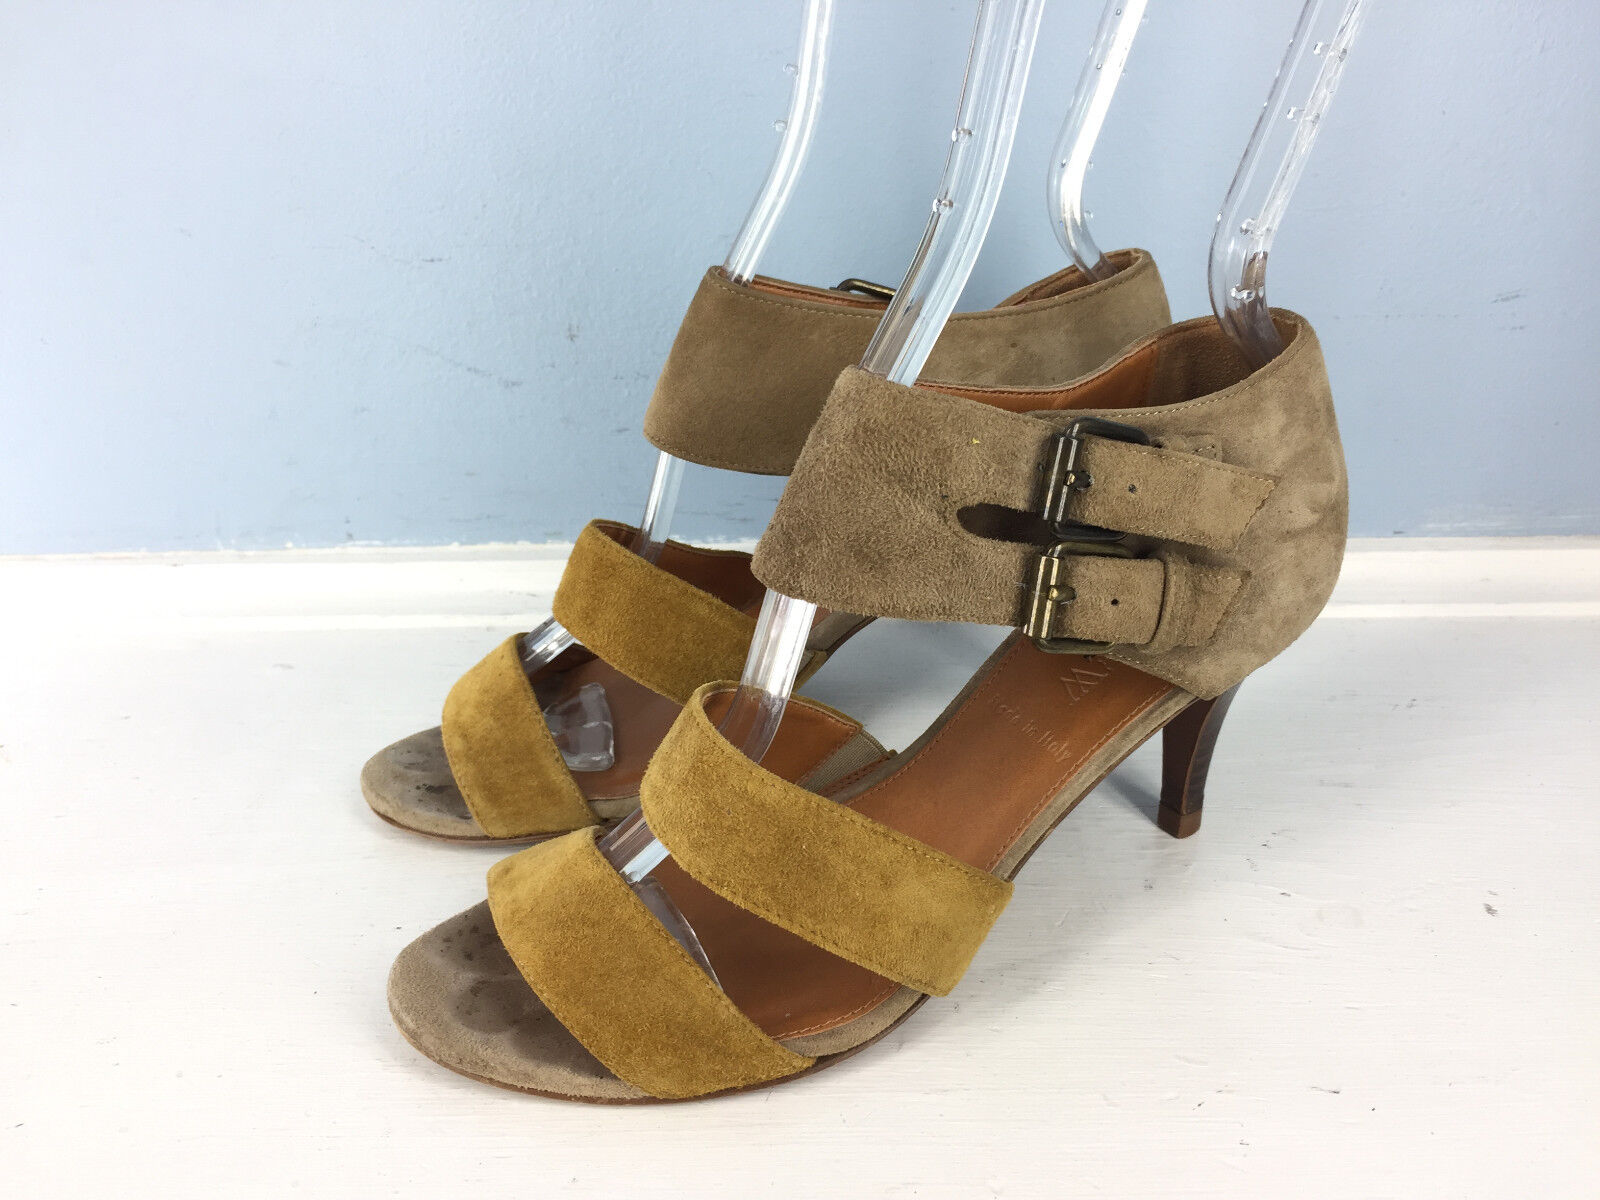 J CREW 5.5 Brown Suede Leather Strappy Ankle Strap Strap Strap Kitten Heel Sandals Career 0c443e